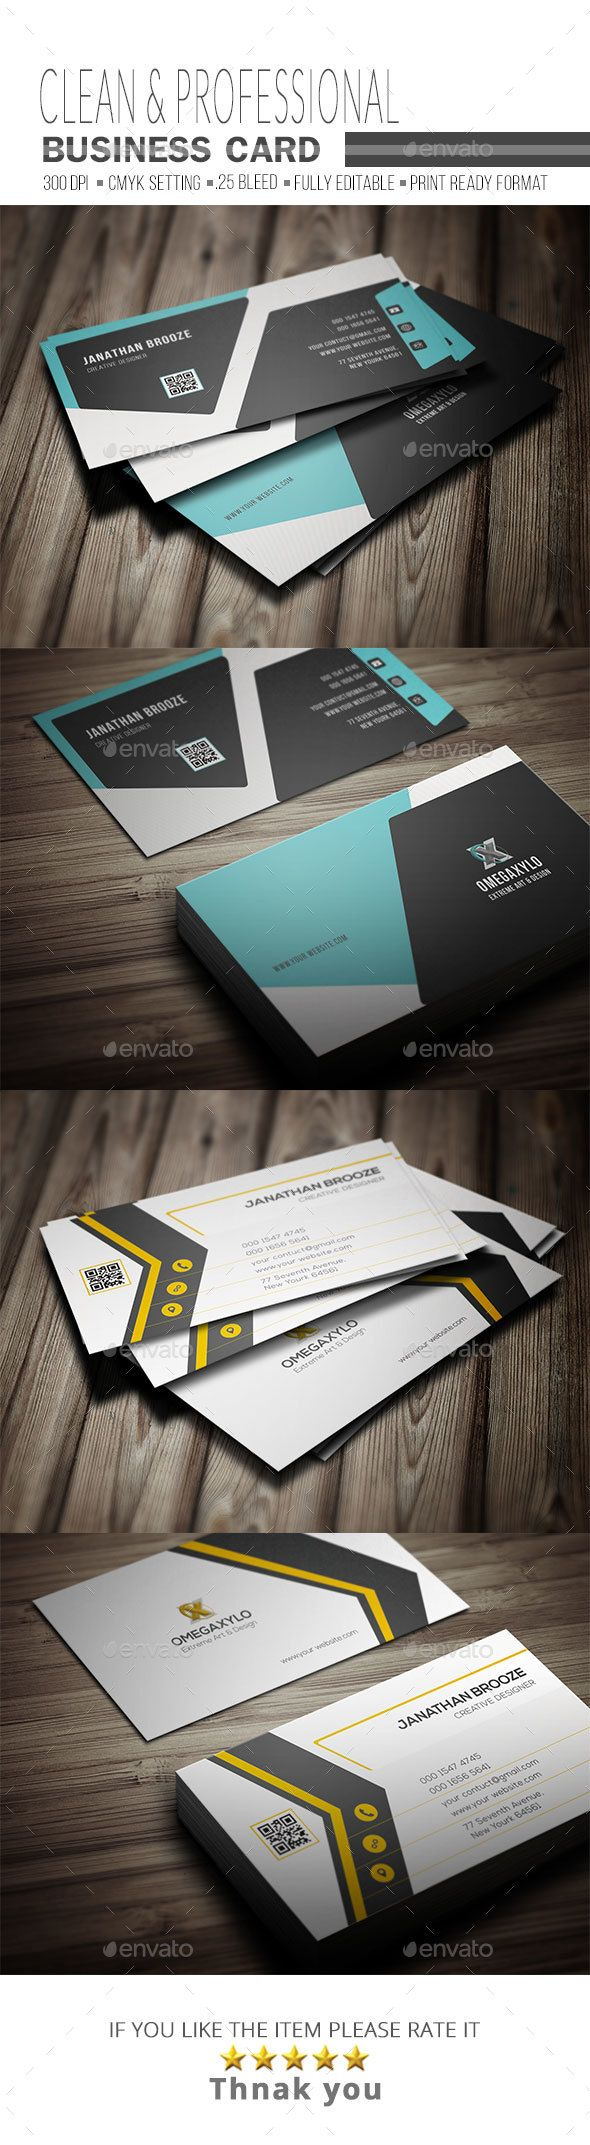 12 Best Uber Marketing Images On Pinterest Business Cards Uber